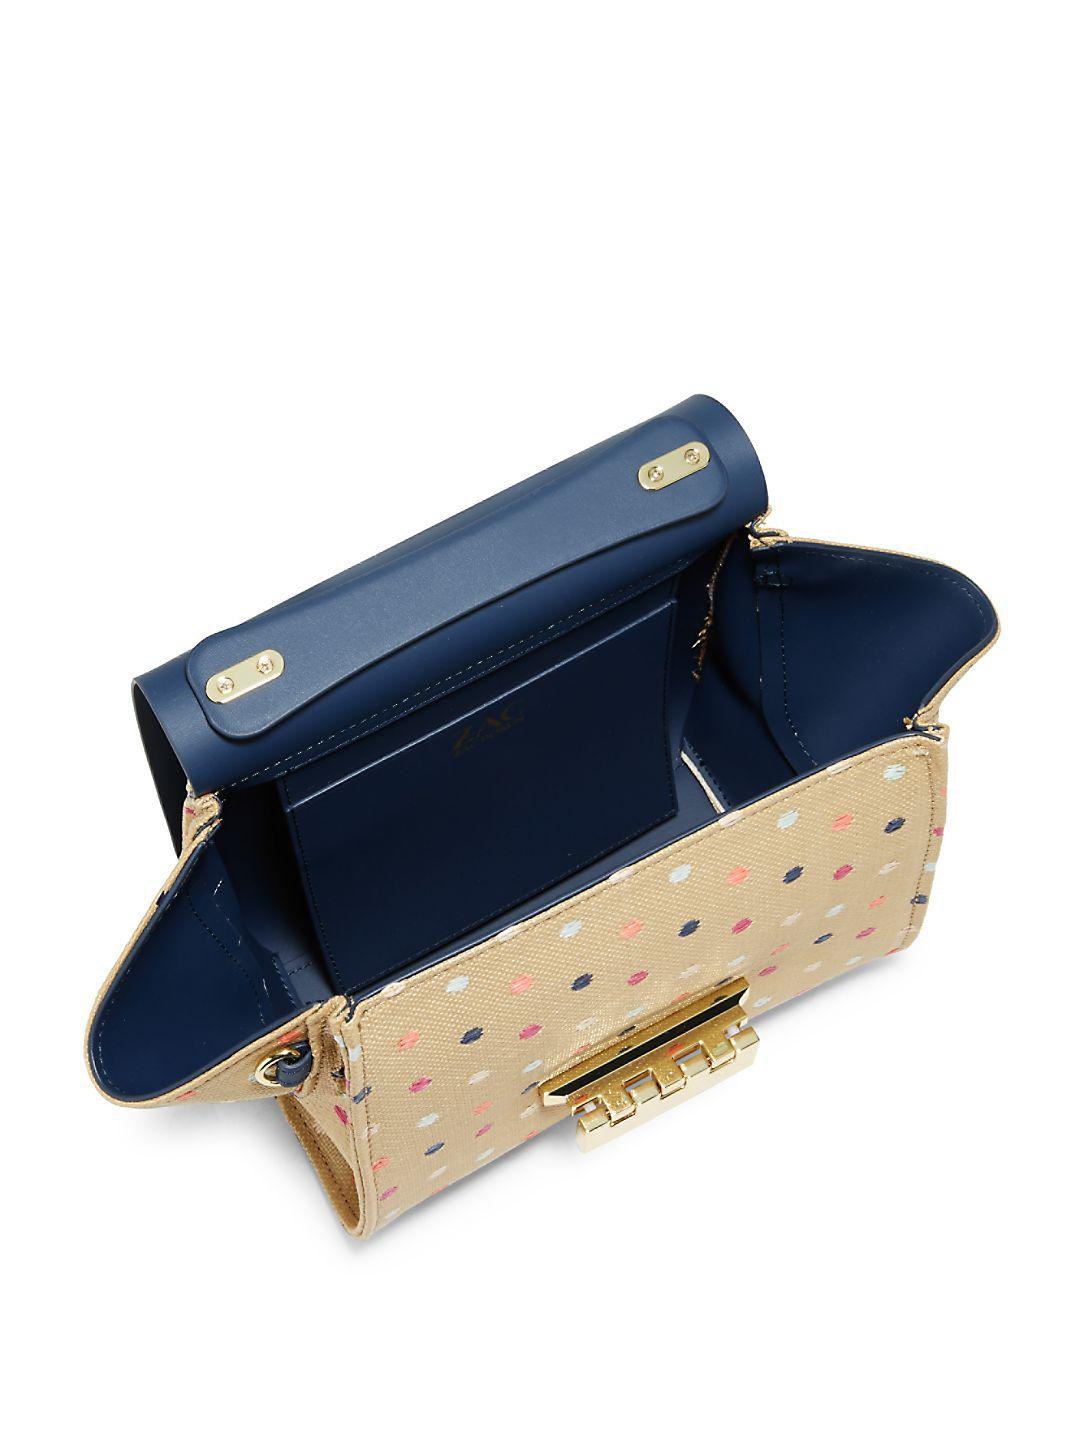 Zac Zac Posen Leather Eartha Polka Dot Crossbody Bag in Navy (Blue)